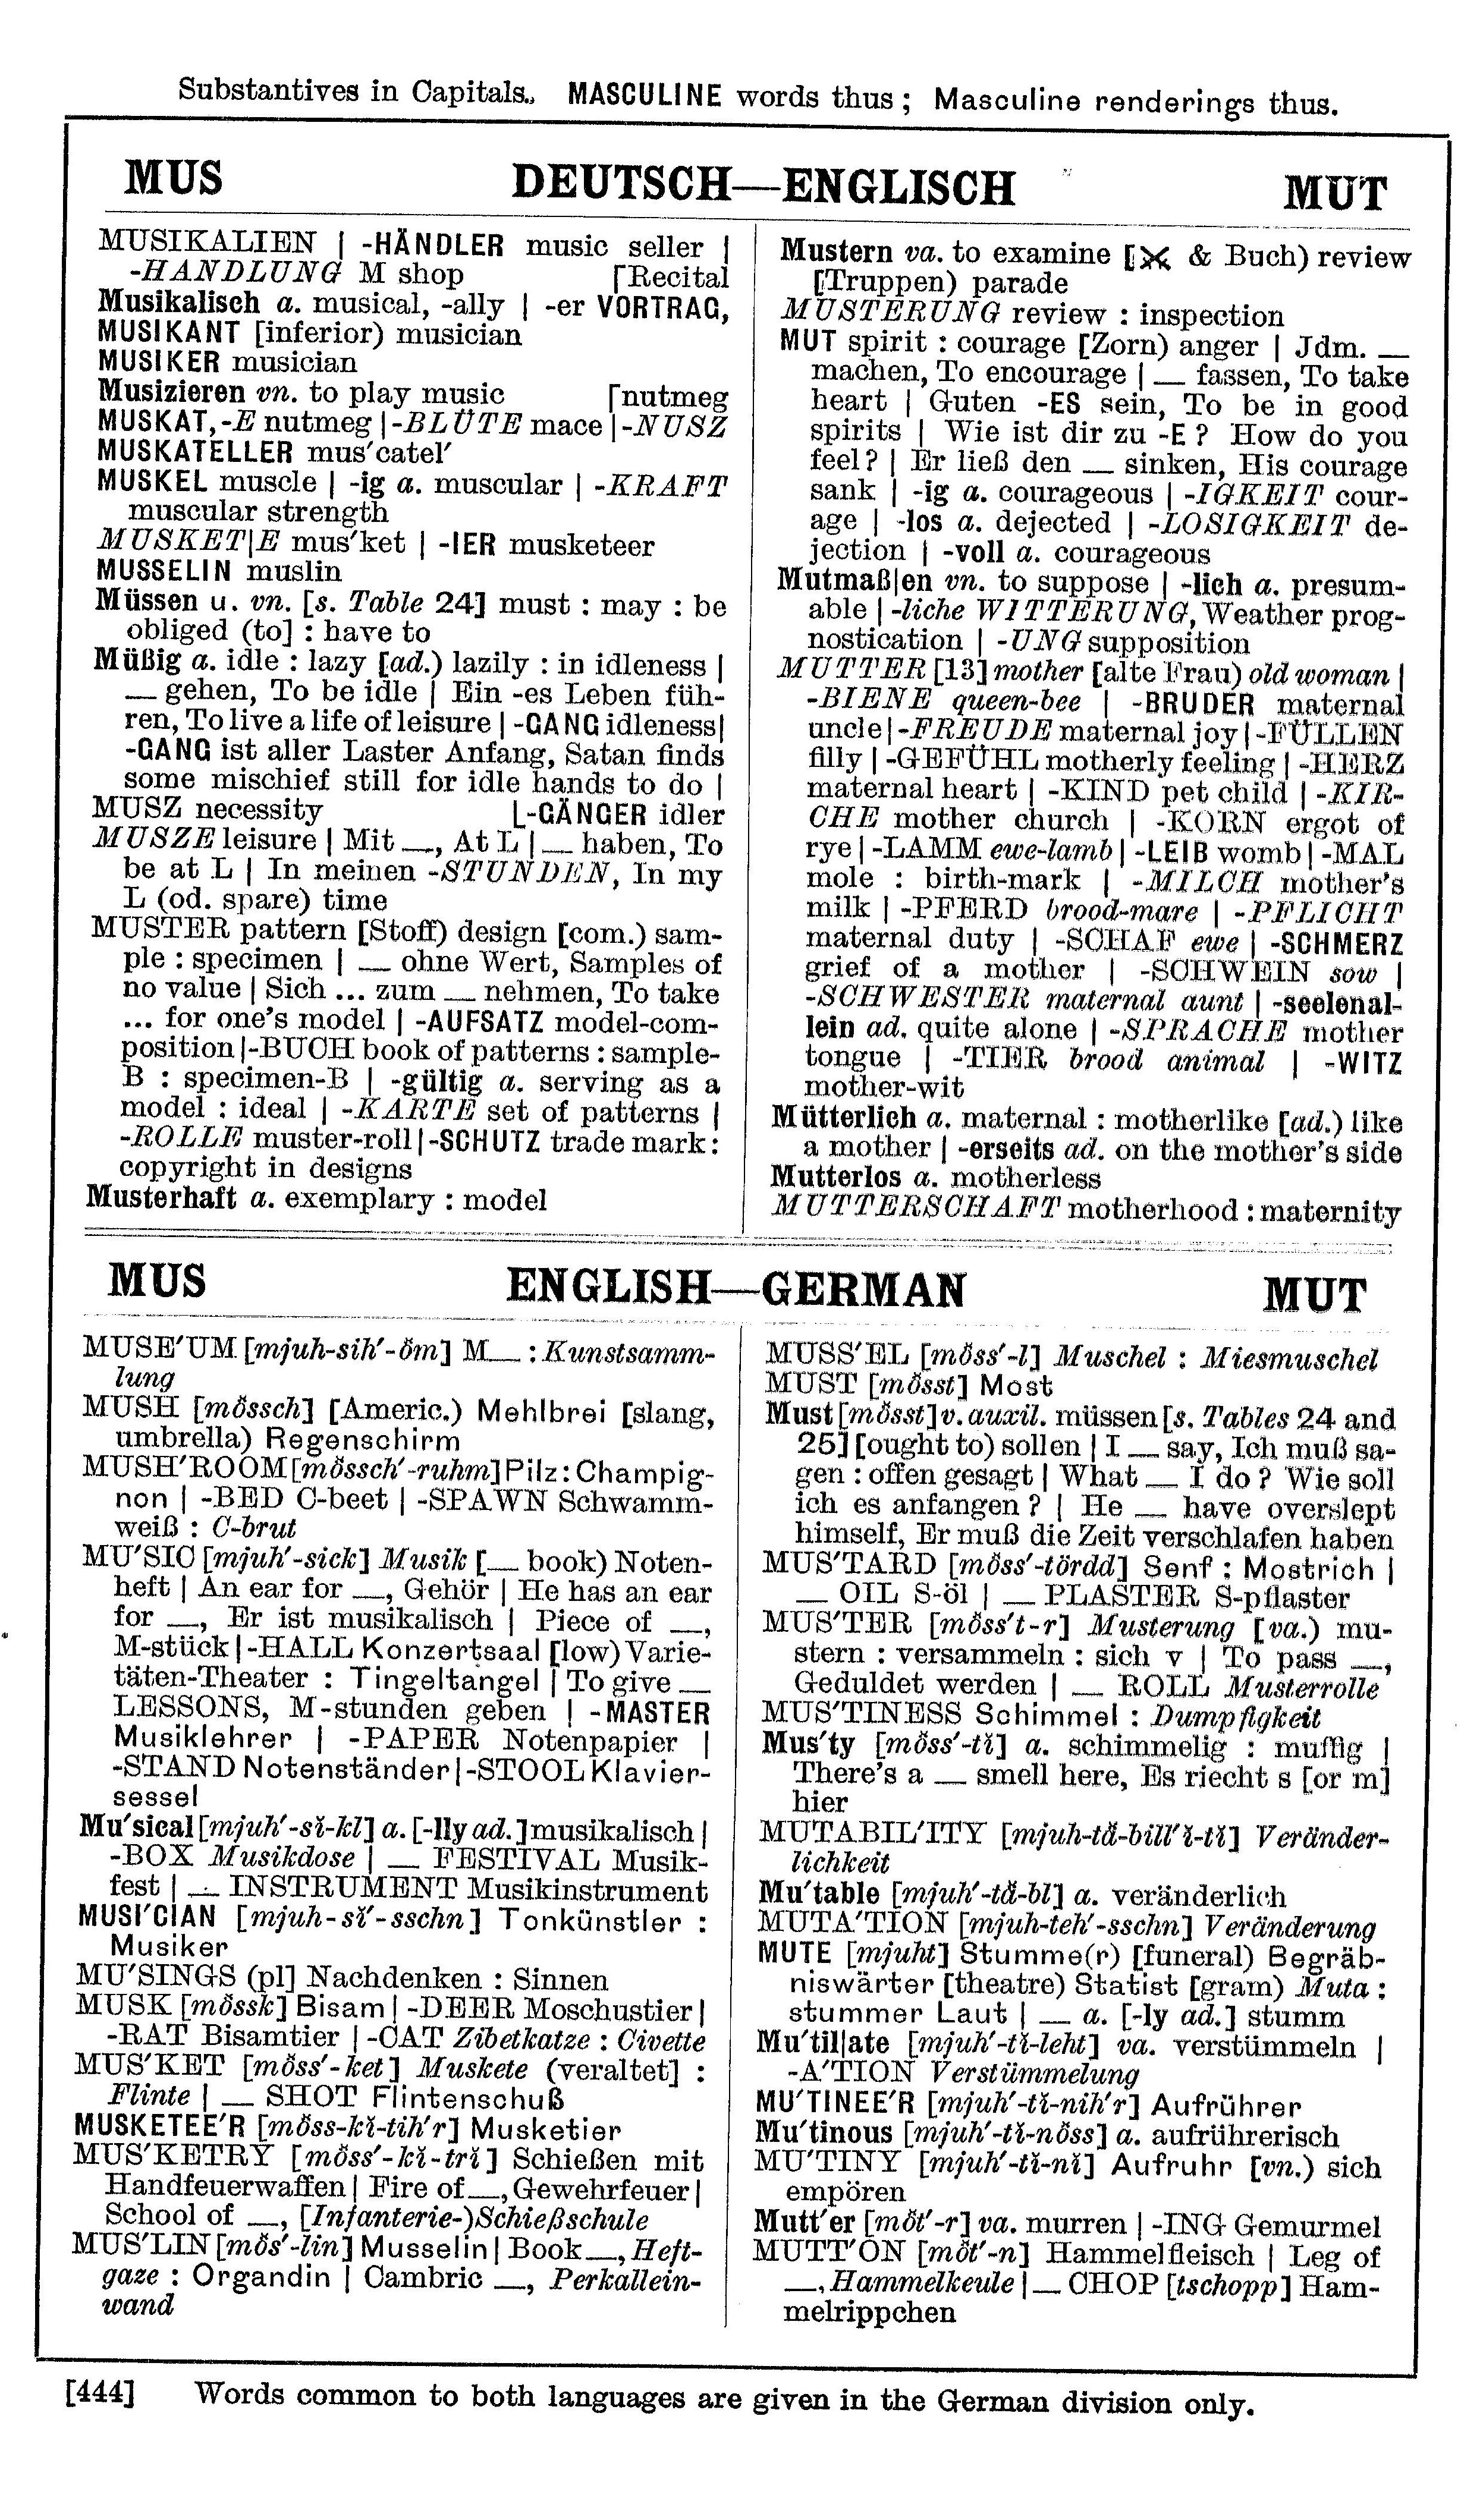 Bellows' German Dictionary, Longmans, Green & Co. Ltd., first published in 1912